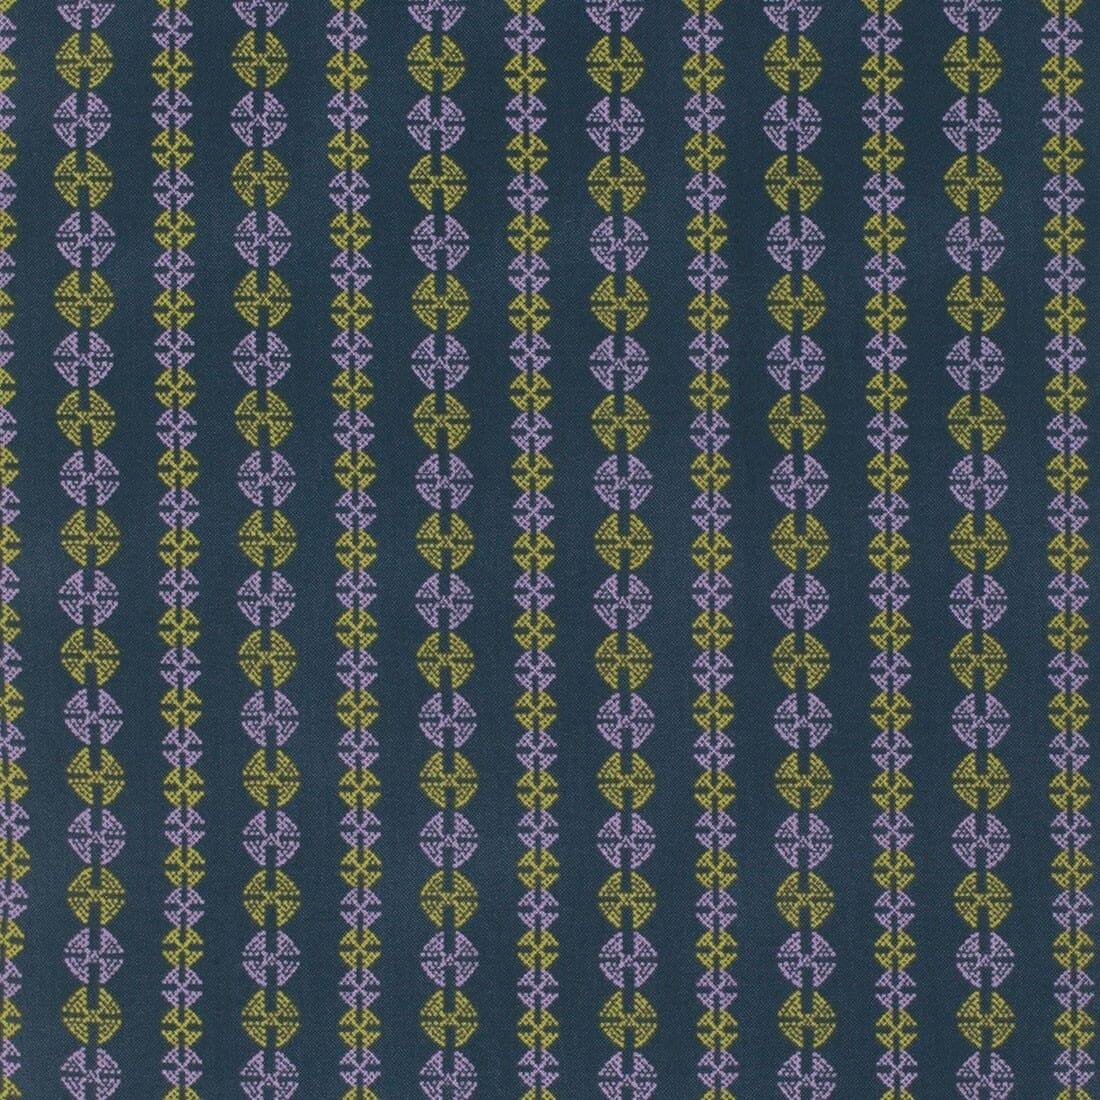 Amy Butler Bright Heart Inspired Navy Stitchy Dots Cotton Fabric